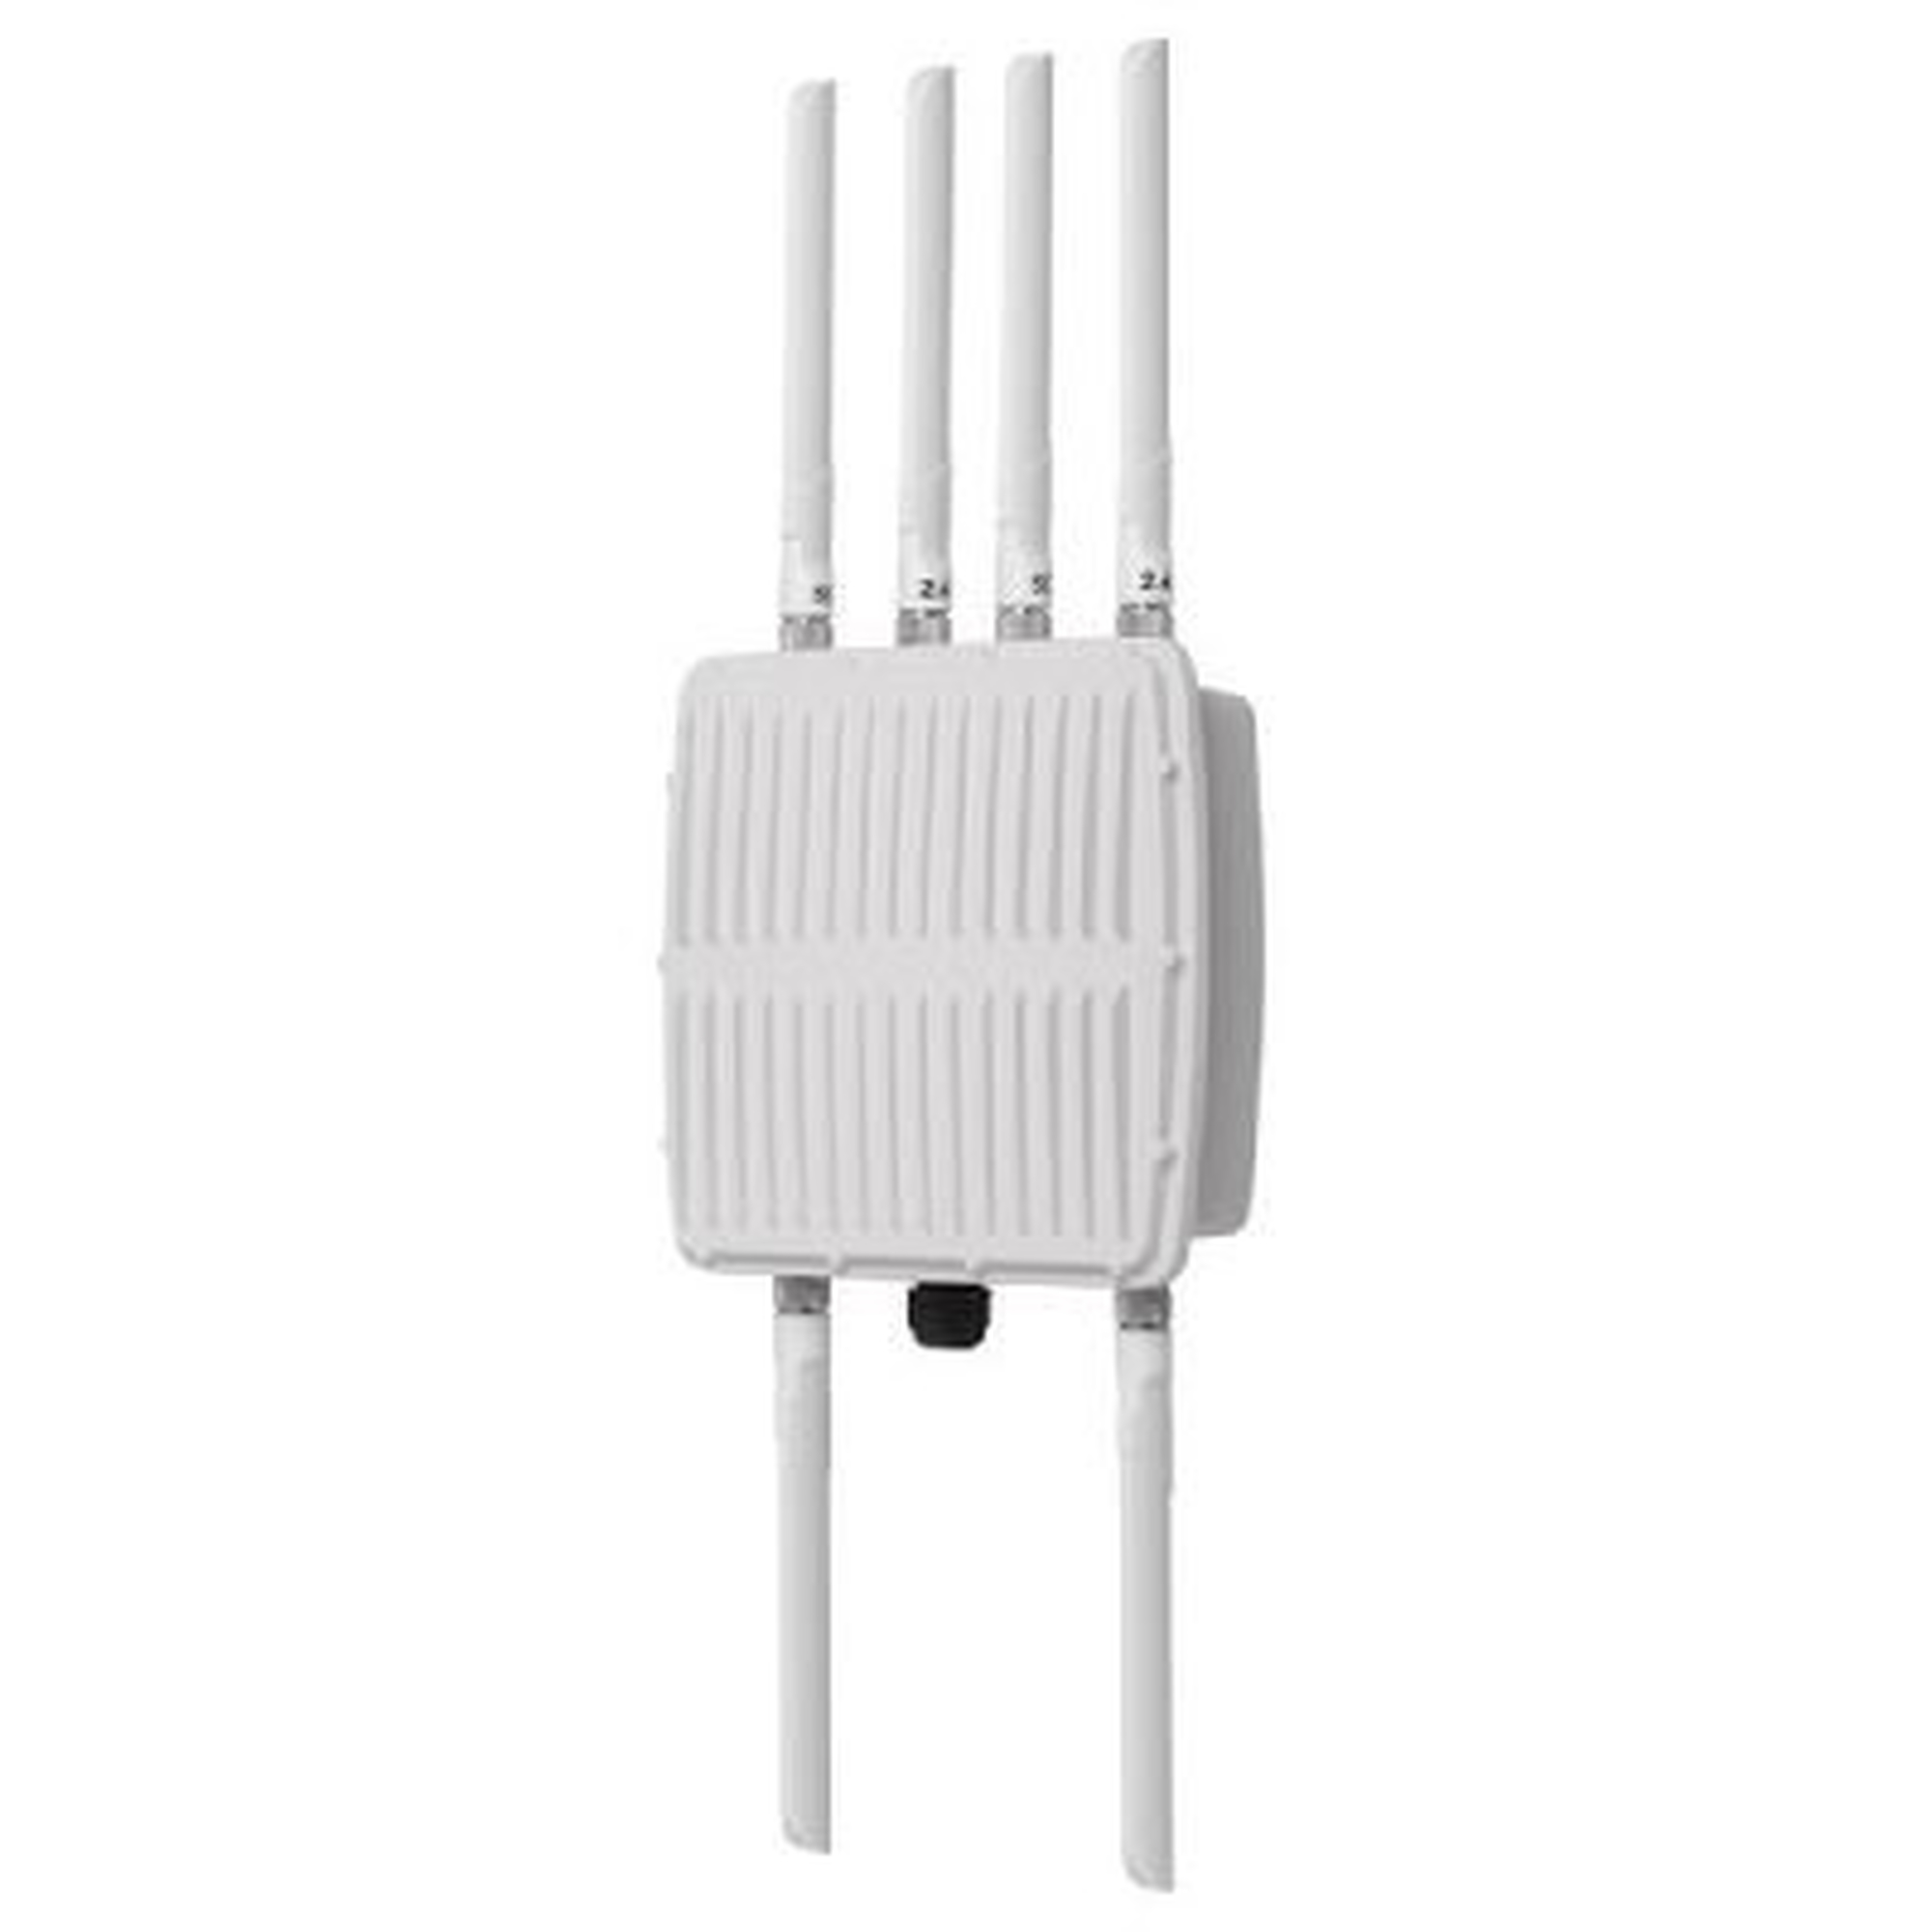 Edimax Pro OAP1750 Dual-Band AC1750 Outdoor PoE Access Point